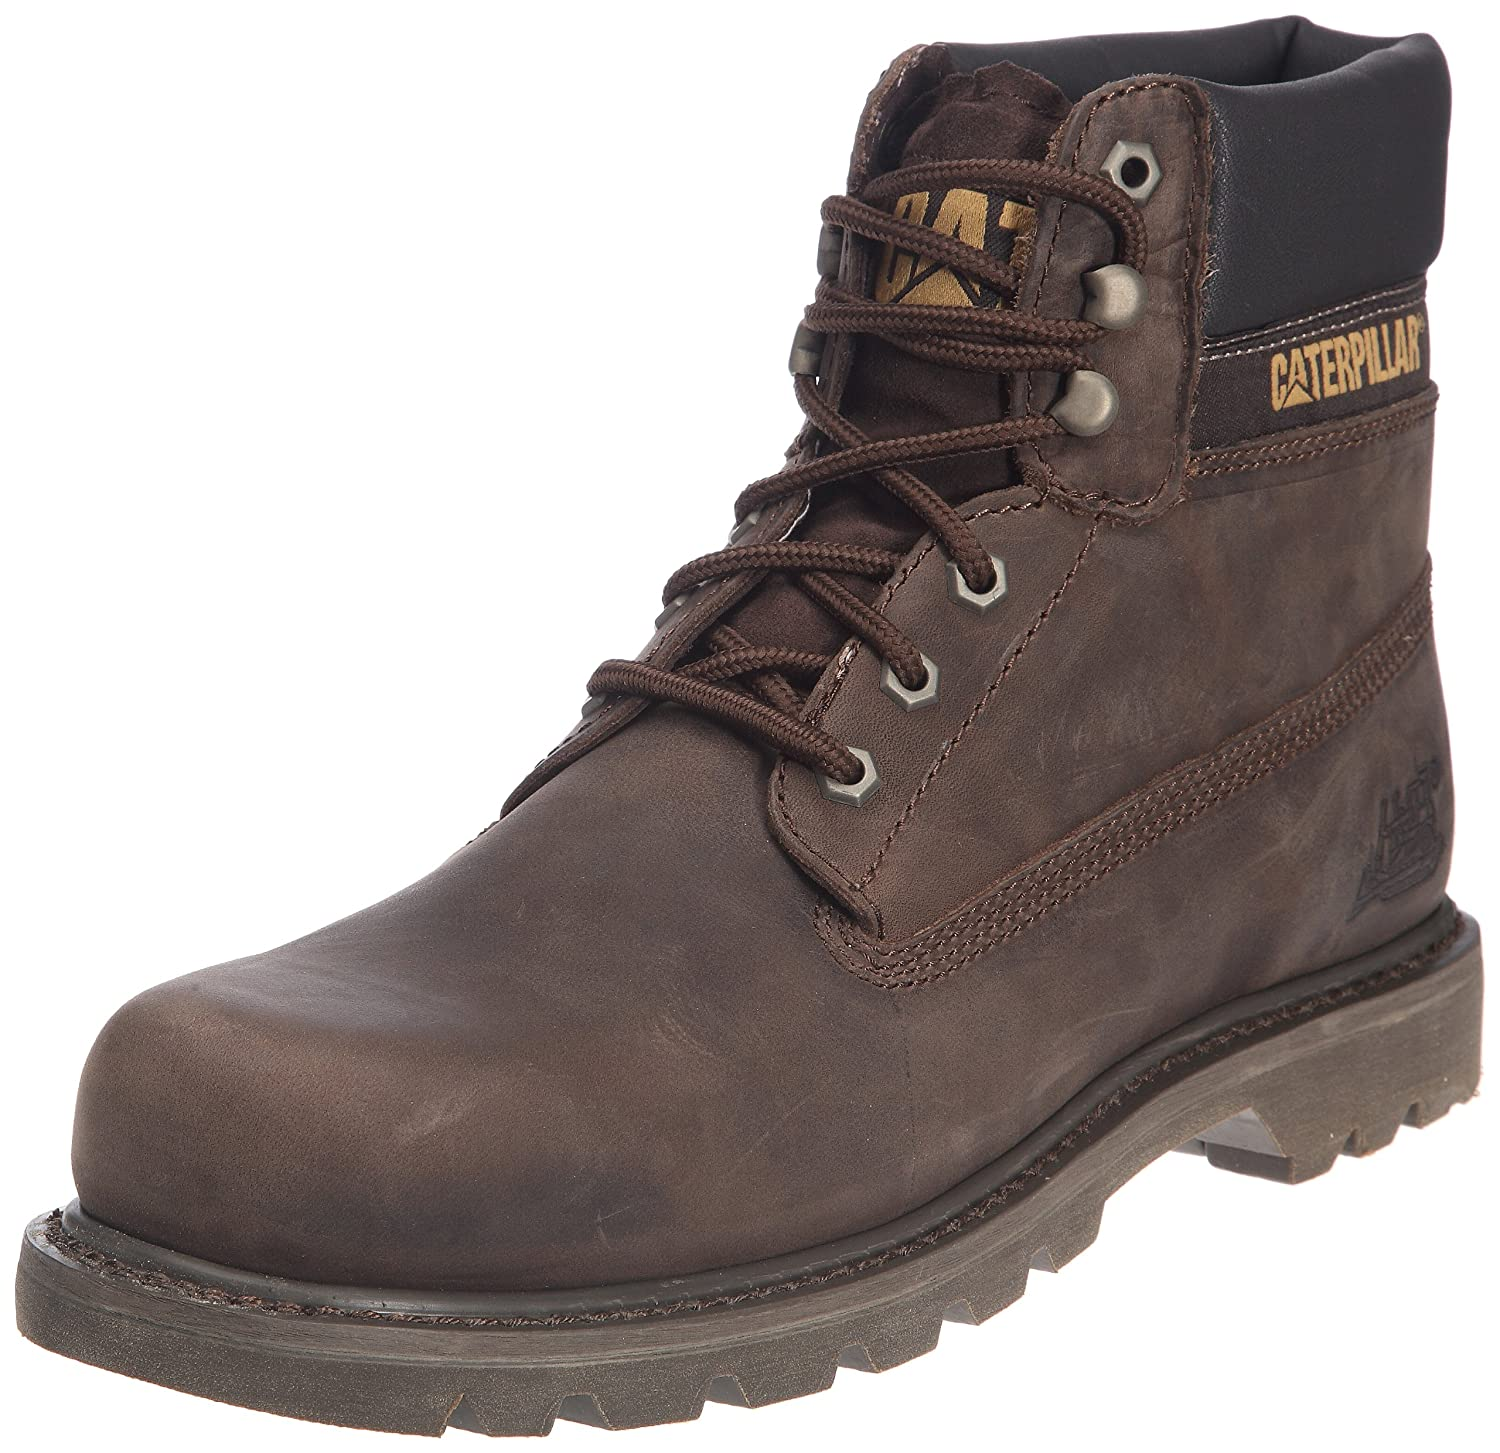 TALLA 42 EU. Cat Footwear Botas Colorado